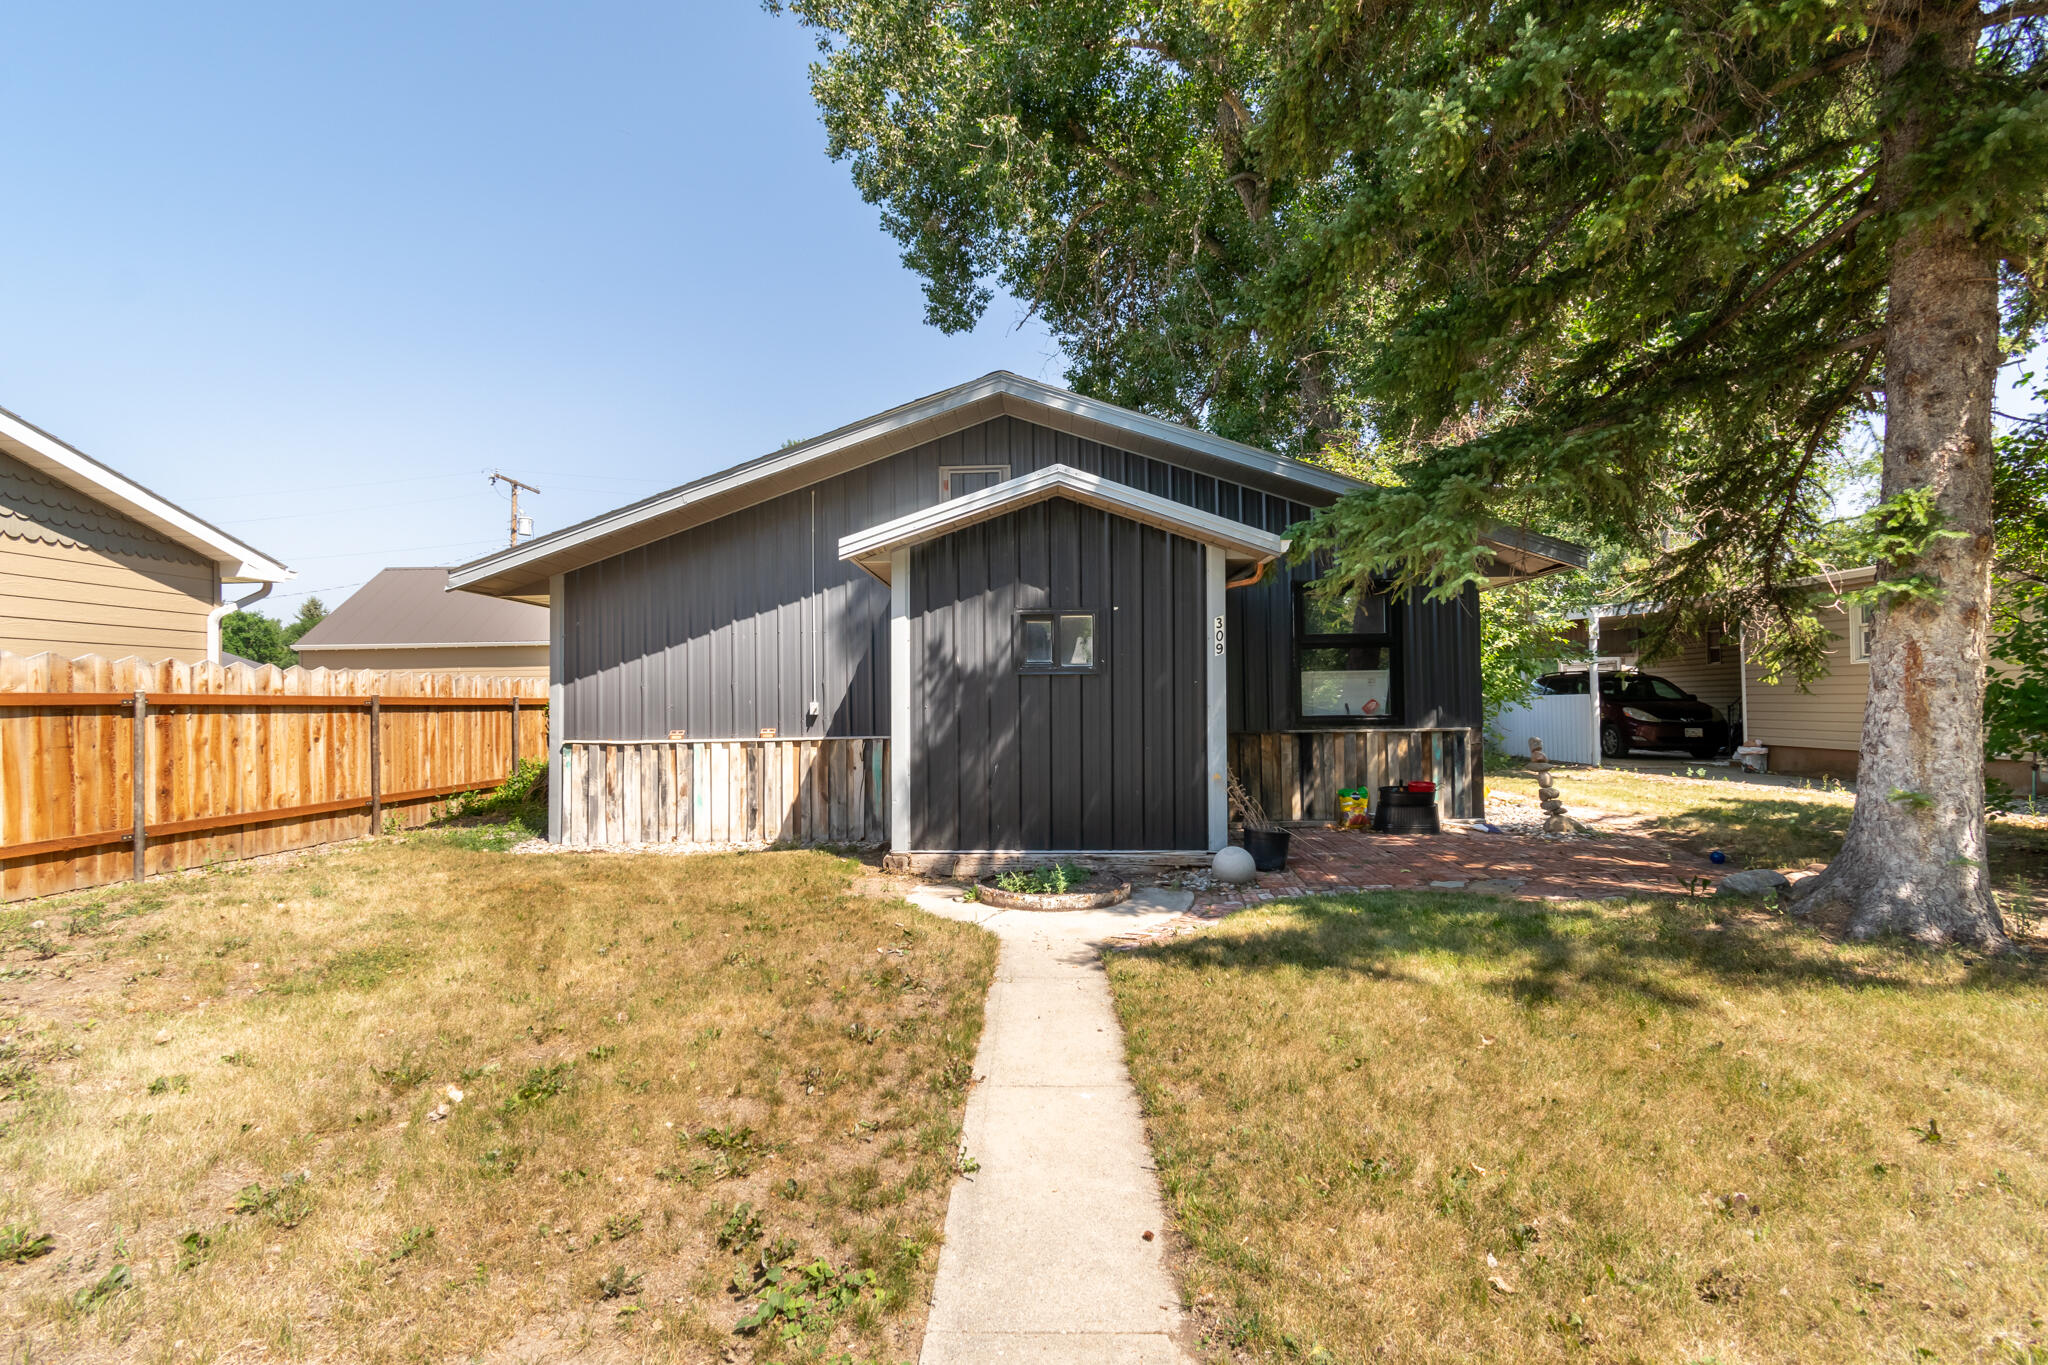 This house is done and ready for its new owner. If you are looking for a low maintenance income property or just a small easy keep personal house, this one will work.  It drips with taste and character. Possibly the farthest thing from a cookie cutter house you can find but still have that low key comfortable feel.